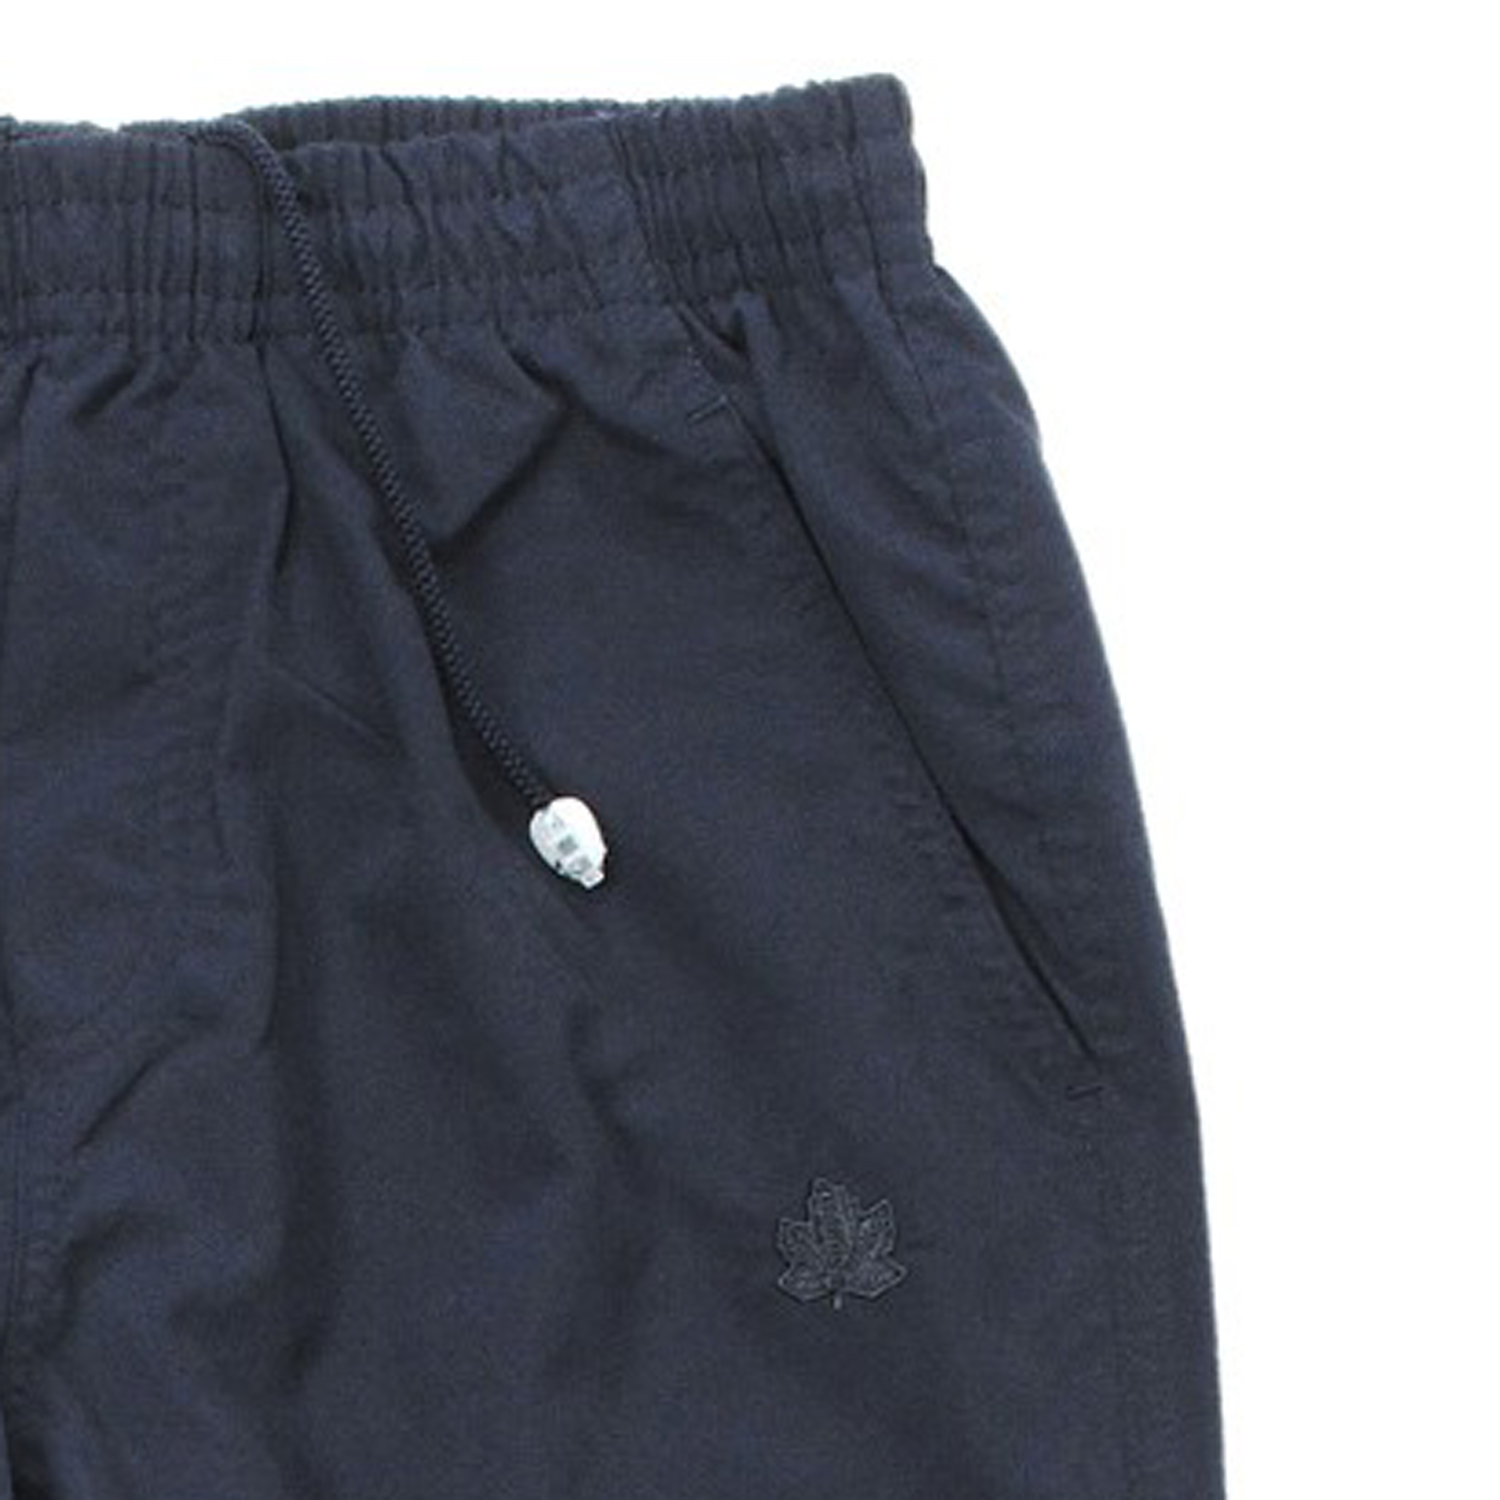 Detail Image to Micro fitness pants dark blue from Ahorn Sportswear in outsizes up to 10 XL